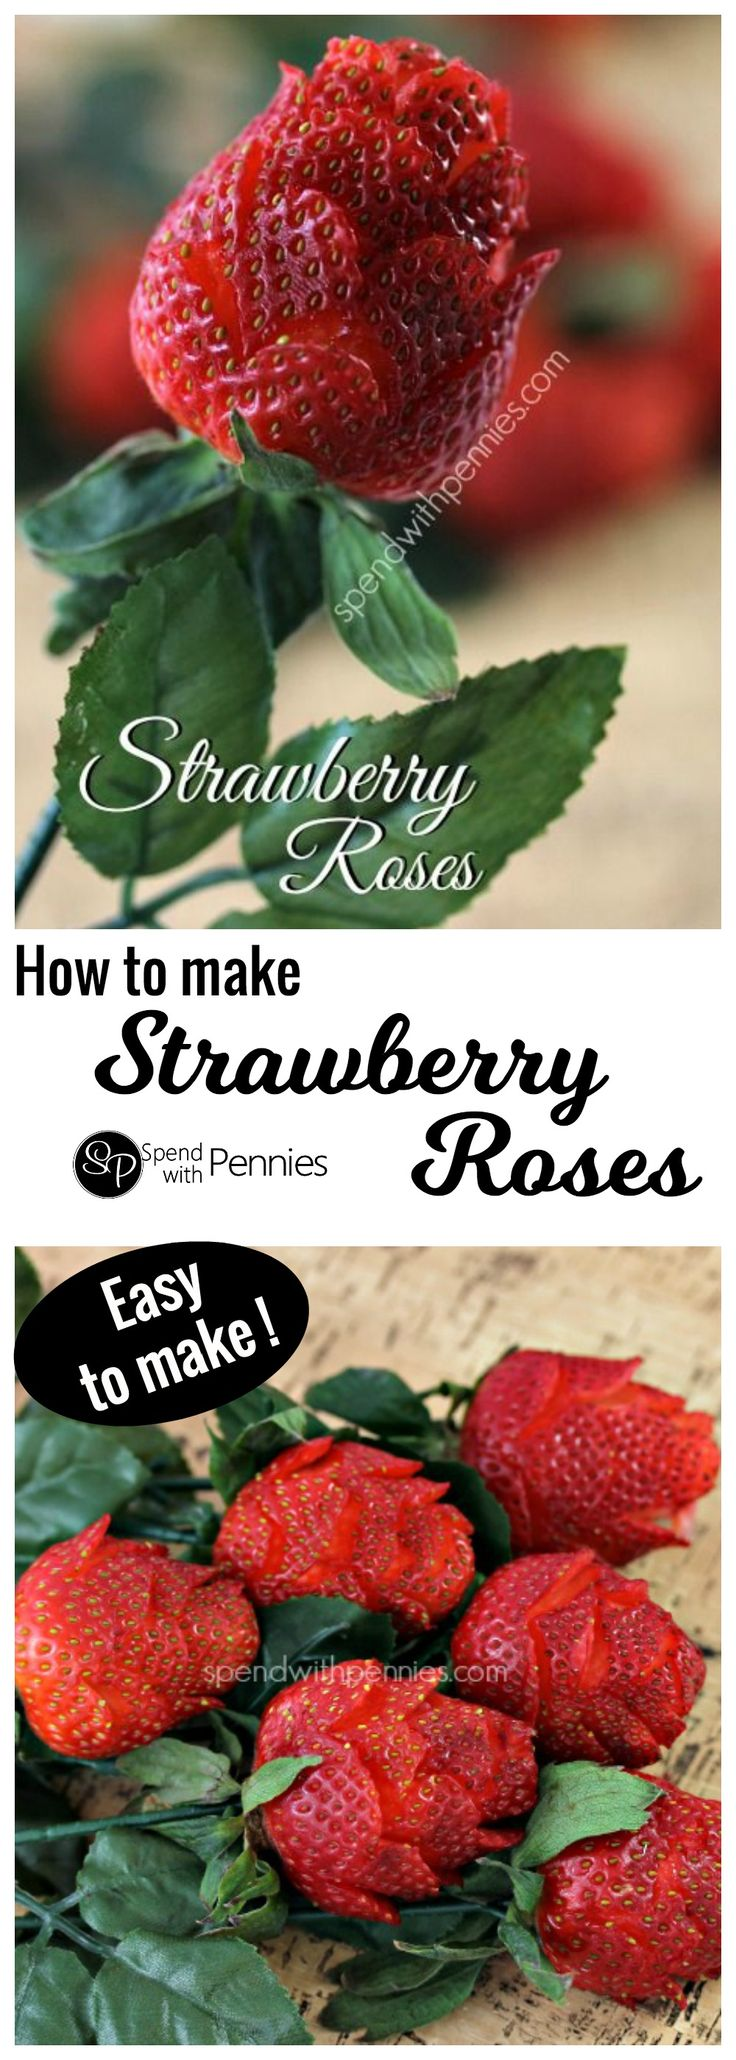 online shops How to Make Strawberry Roses | Recipe | Strawberry Roses, Strawberries and How To Make